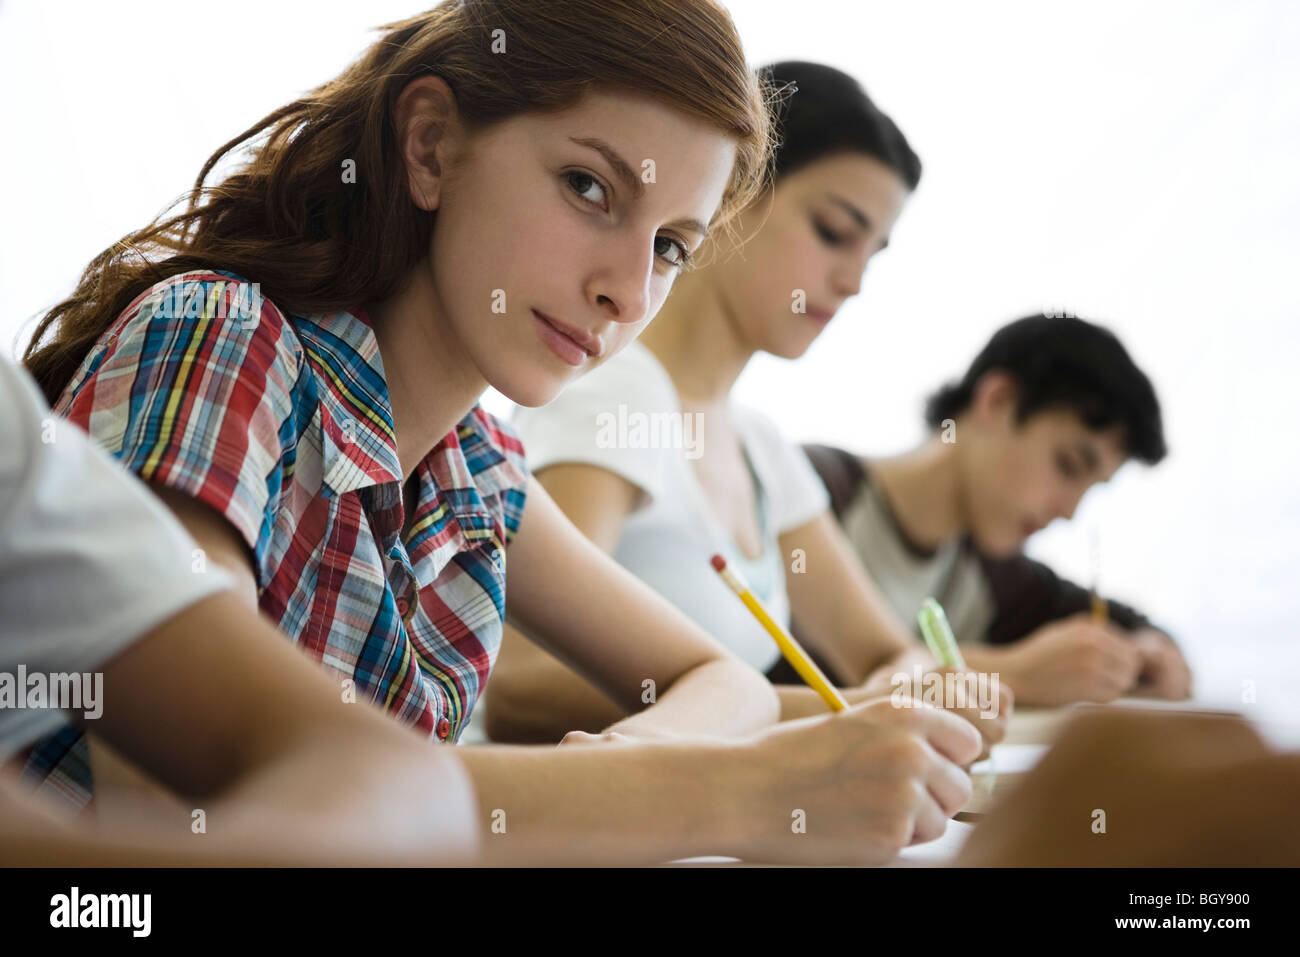 High school students busy with classwork - Stock Image